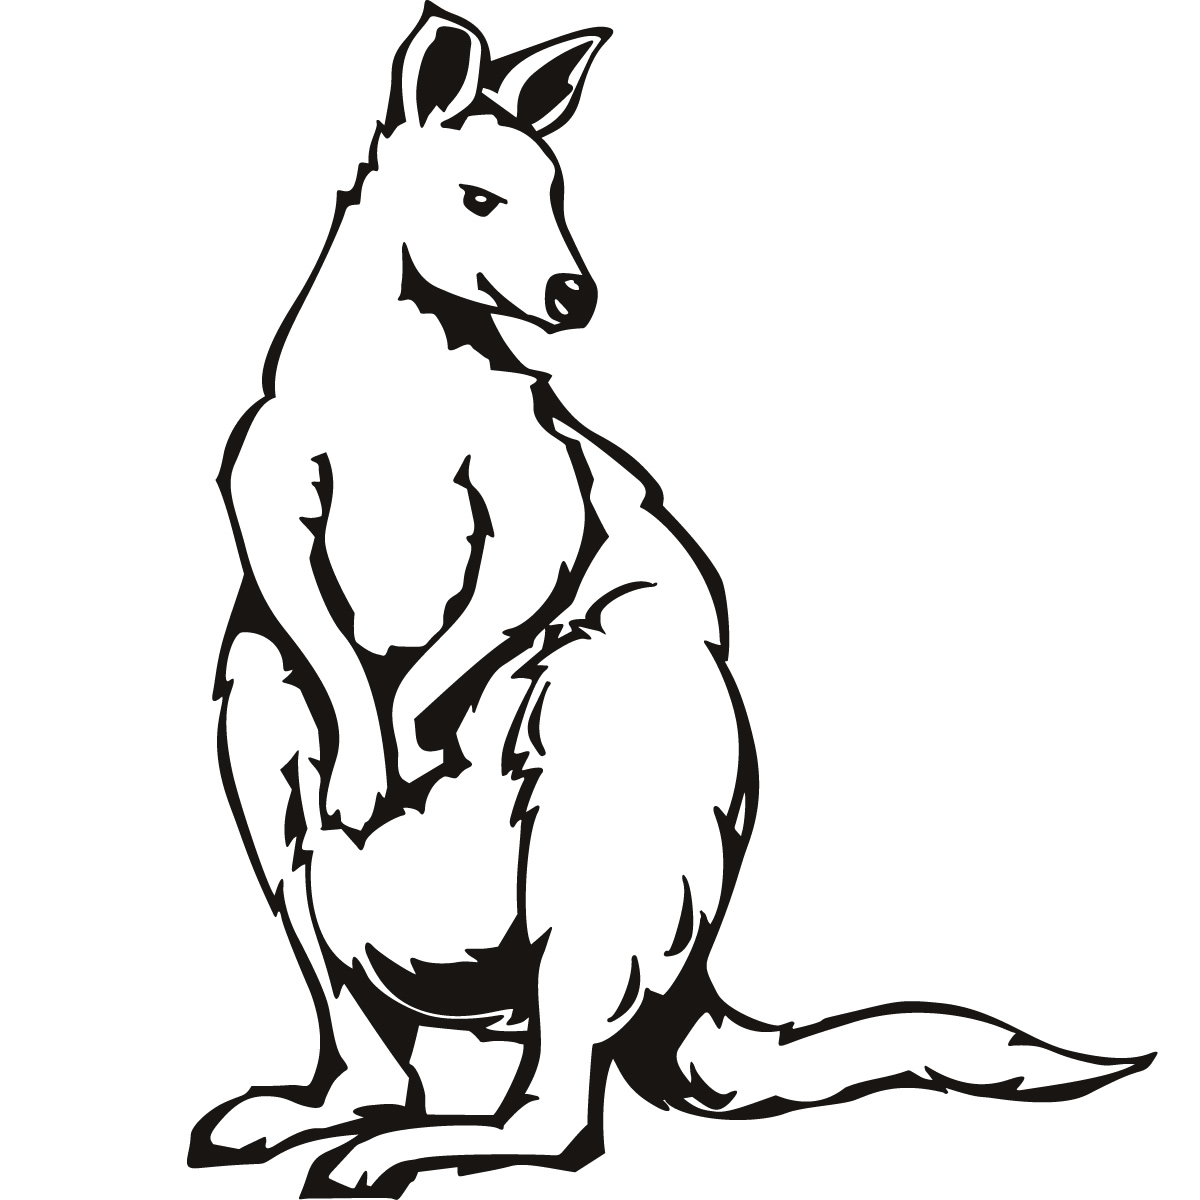 Kangaroo Outline